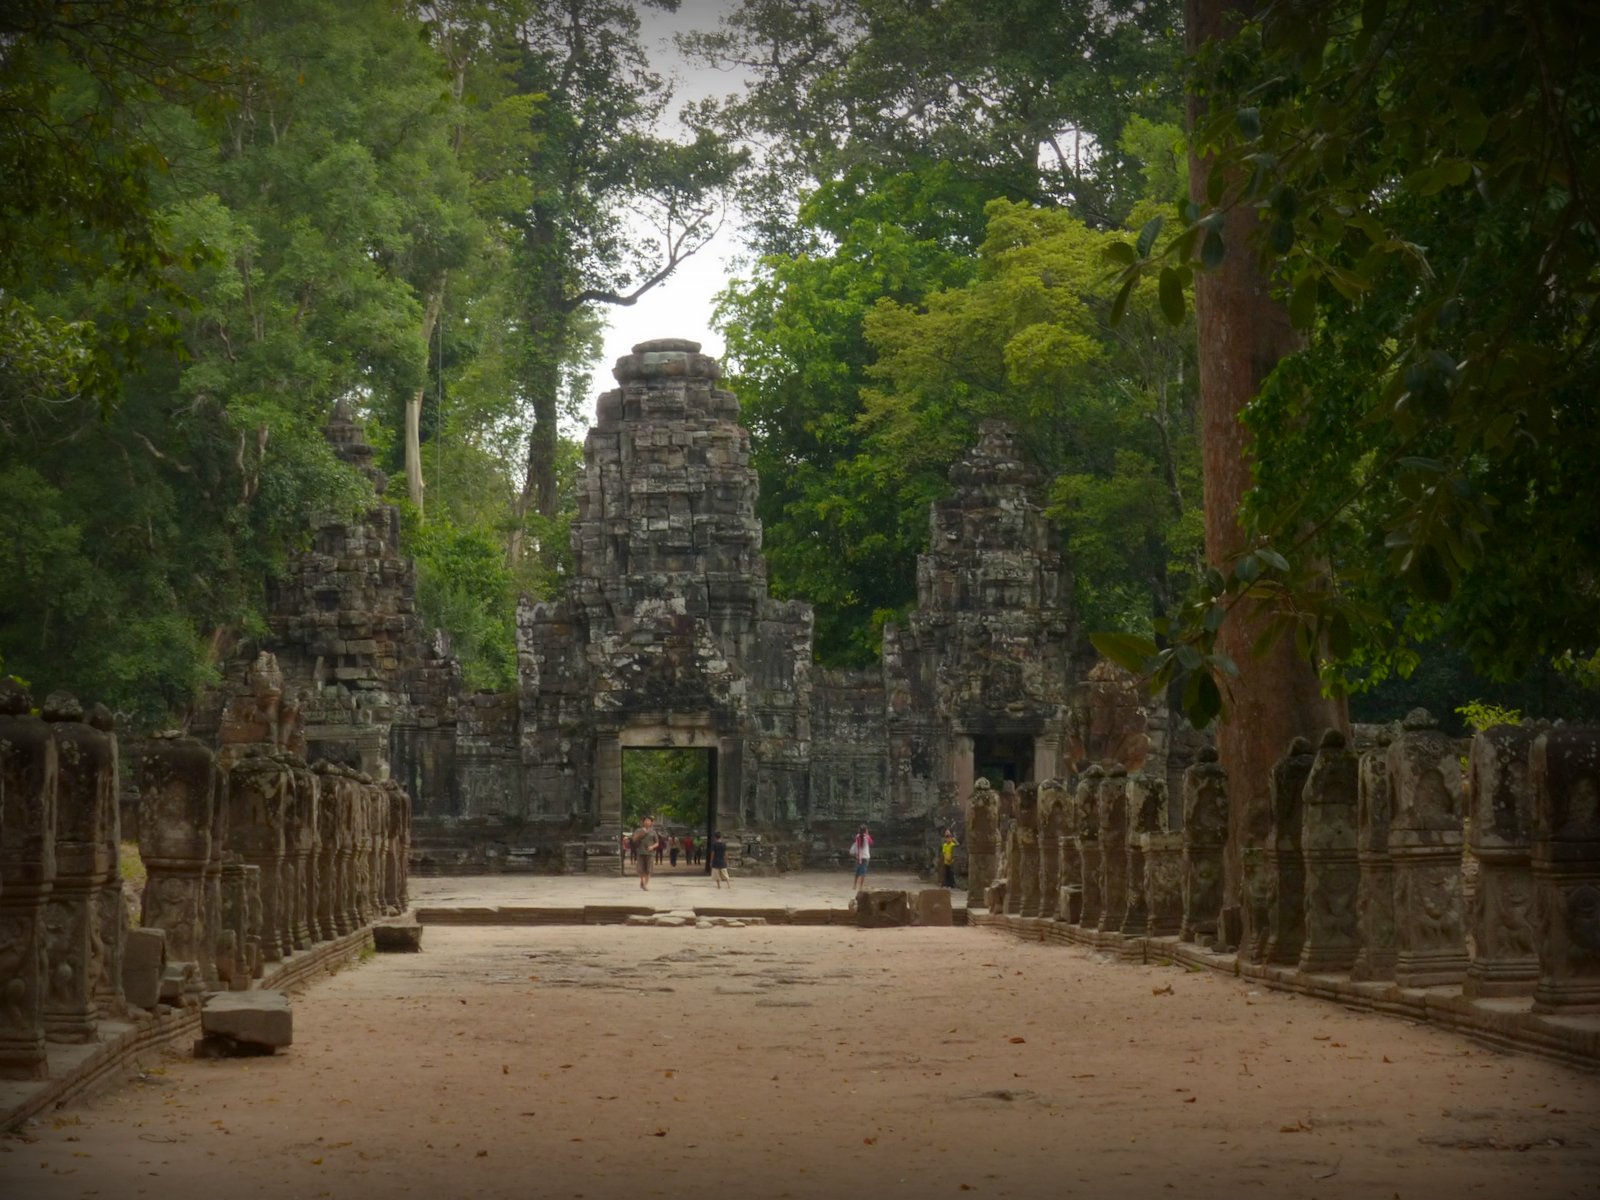 The causeway leading up to Preah Khan.